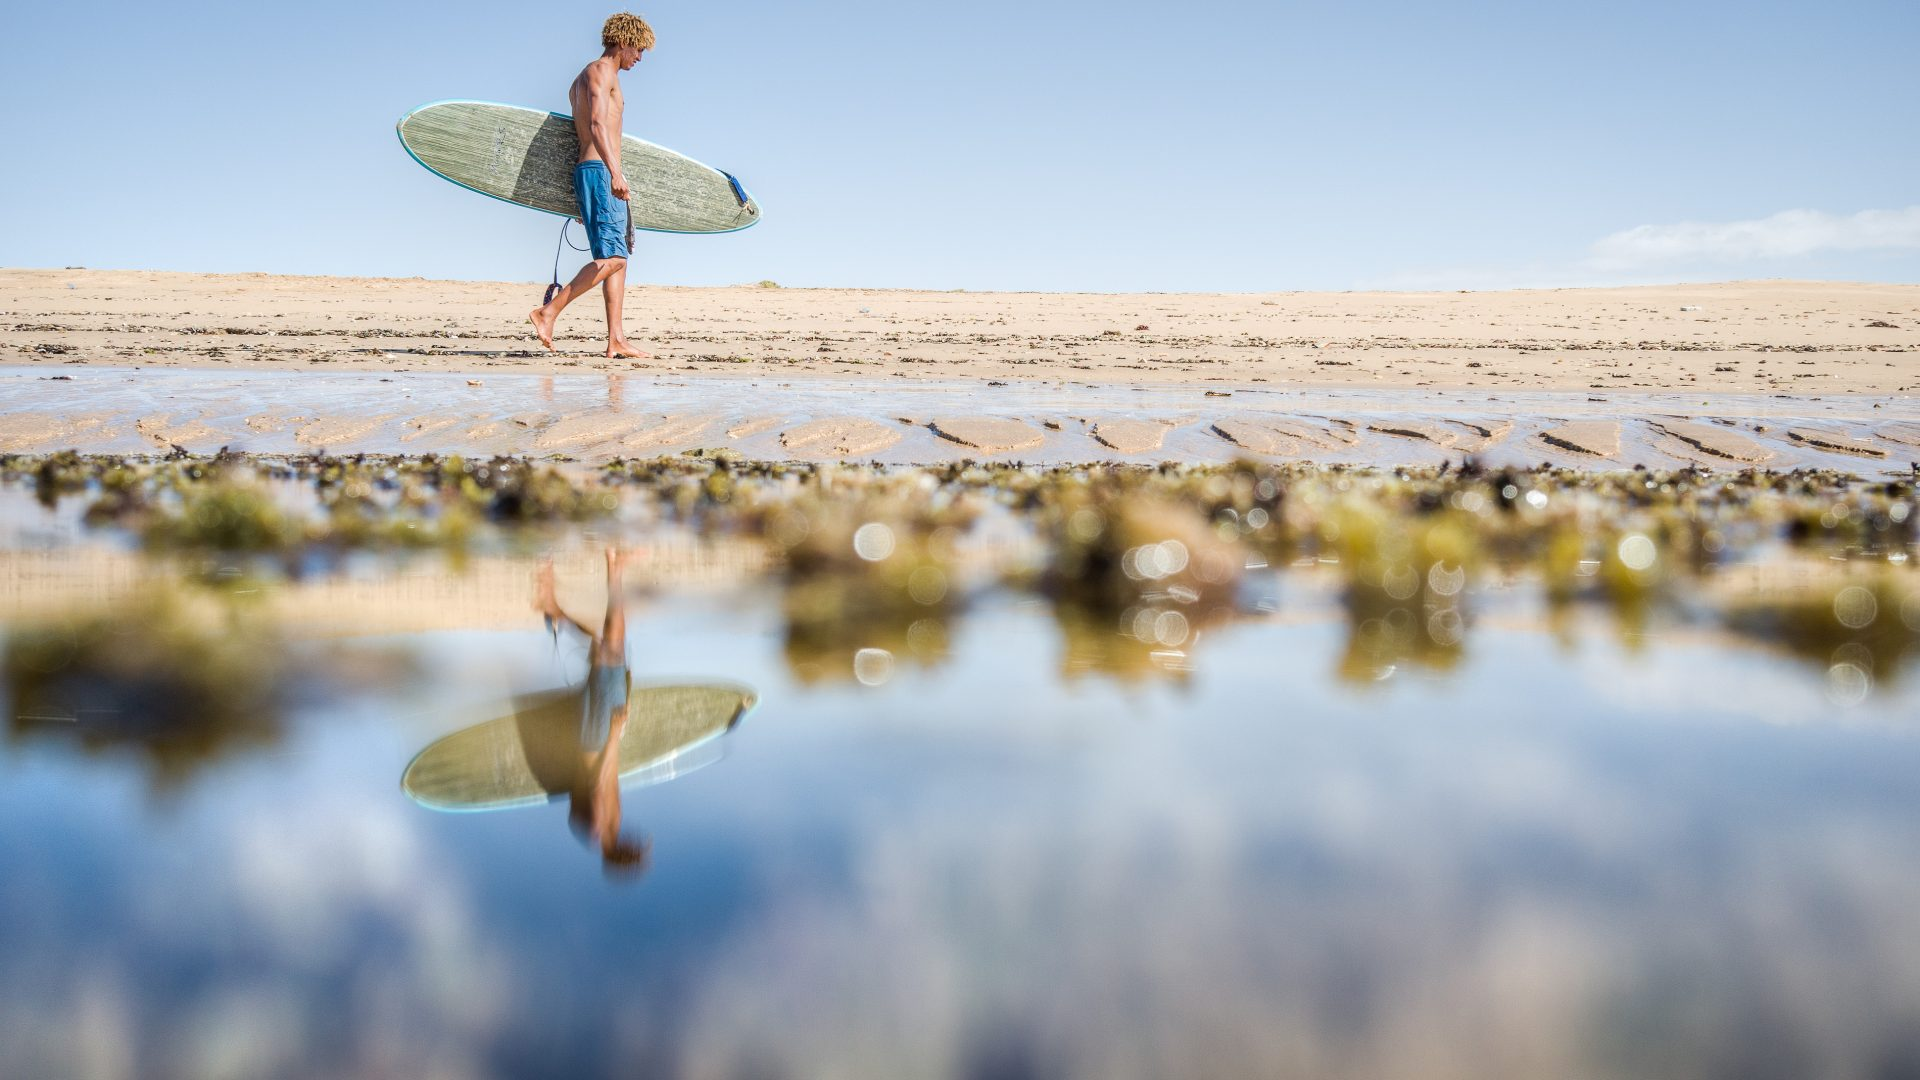 A surfers reflection in the shallow waters at low tide after a surf session around the giant shipwrecks.